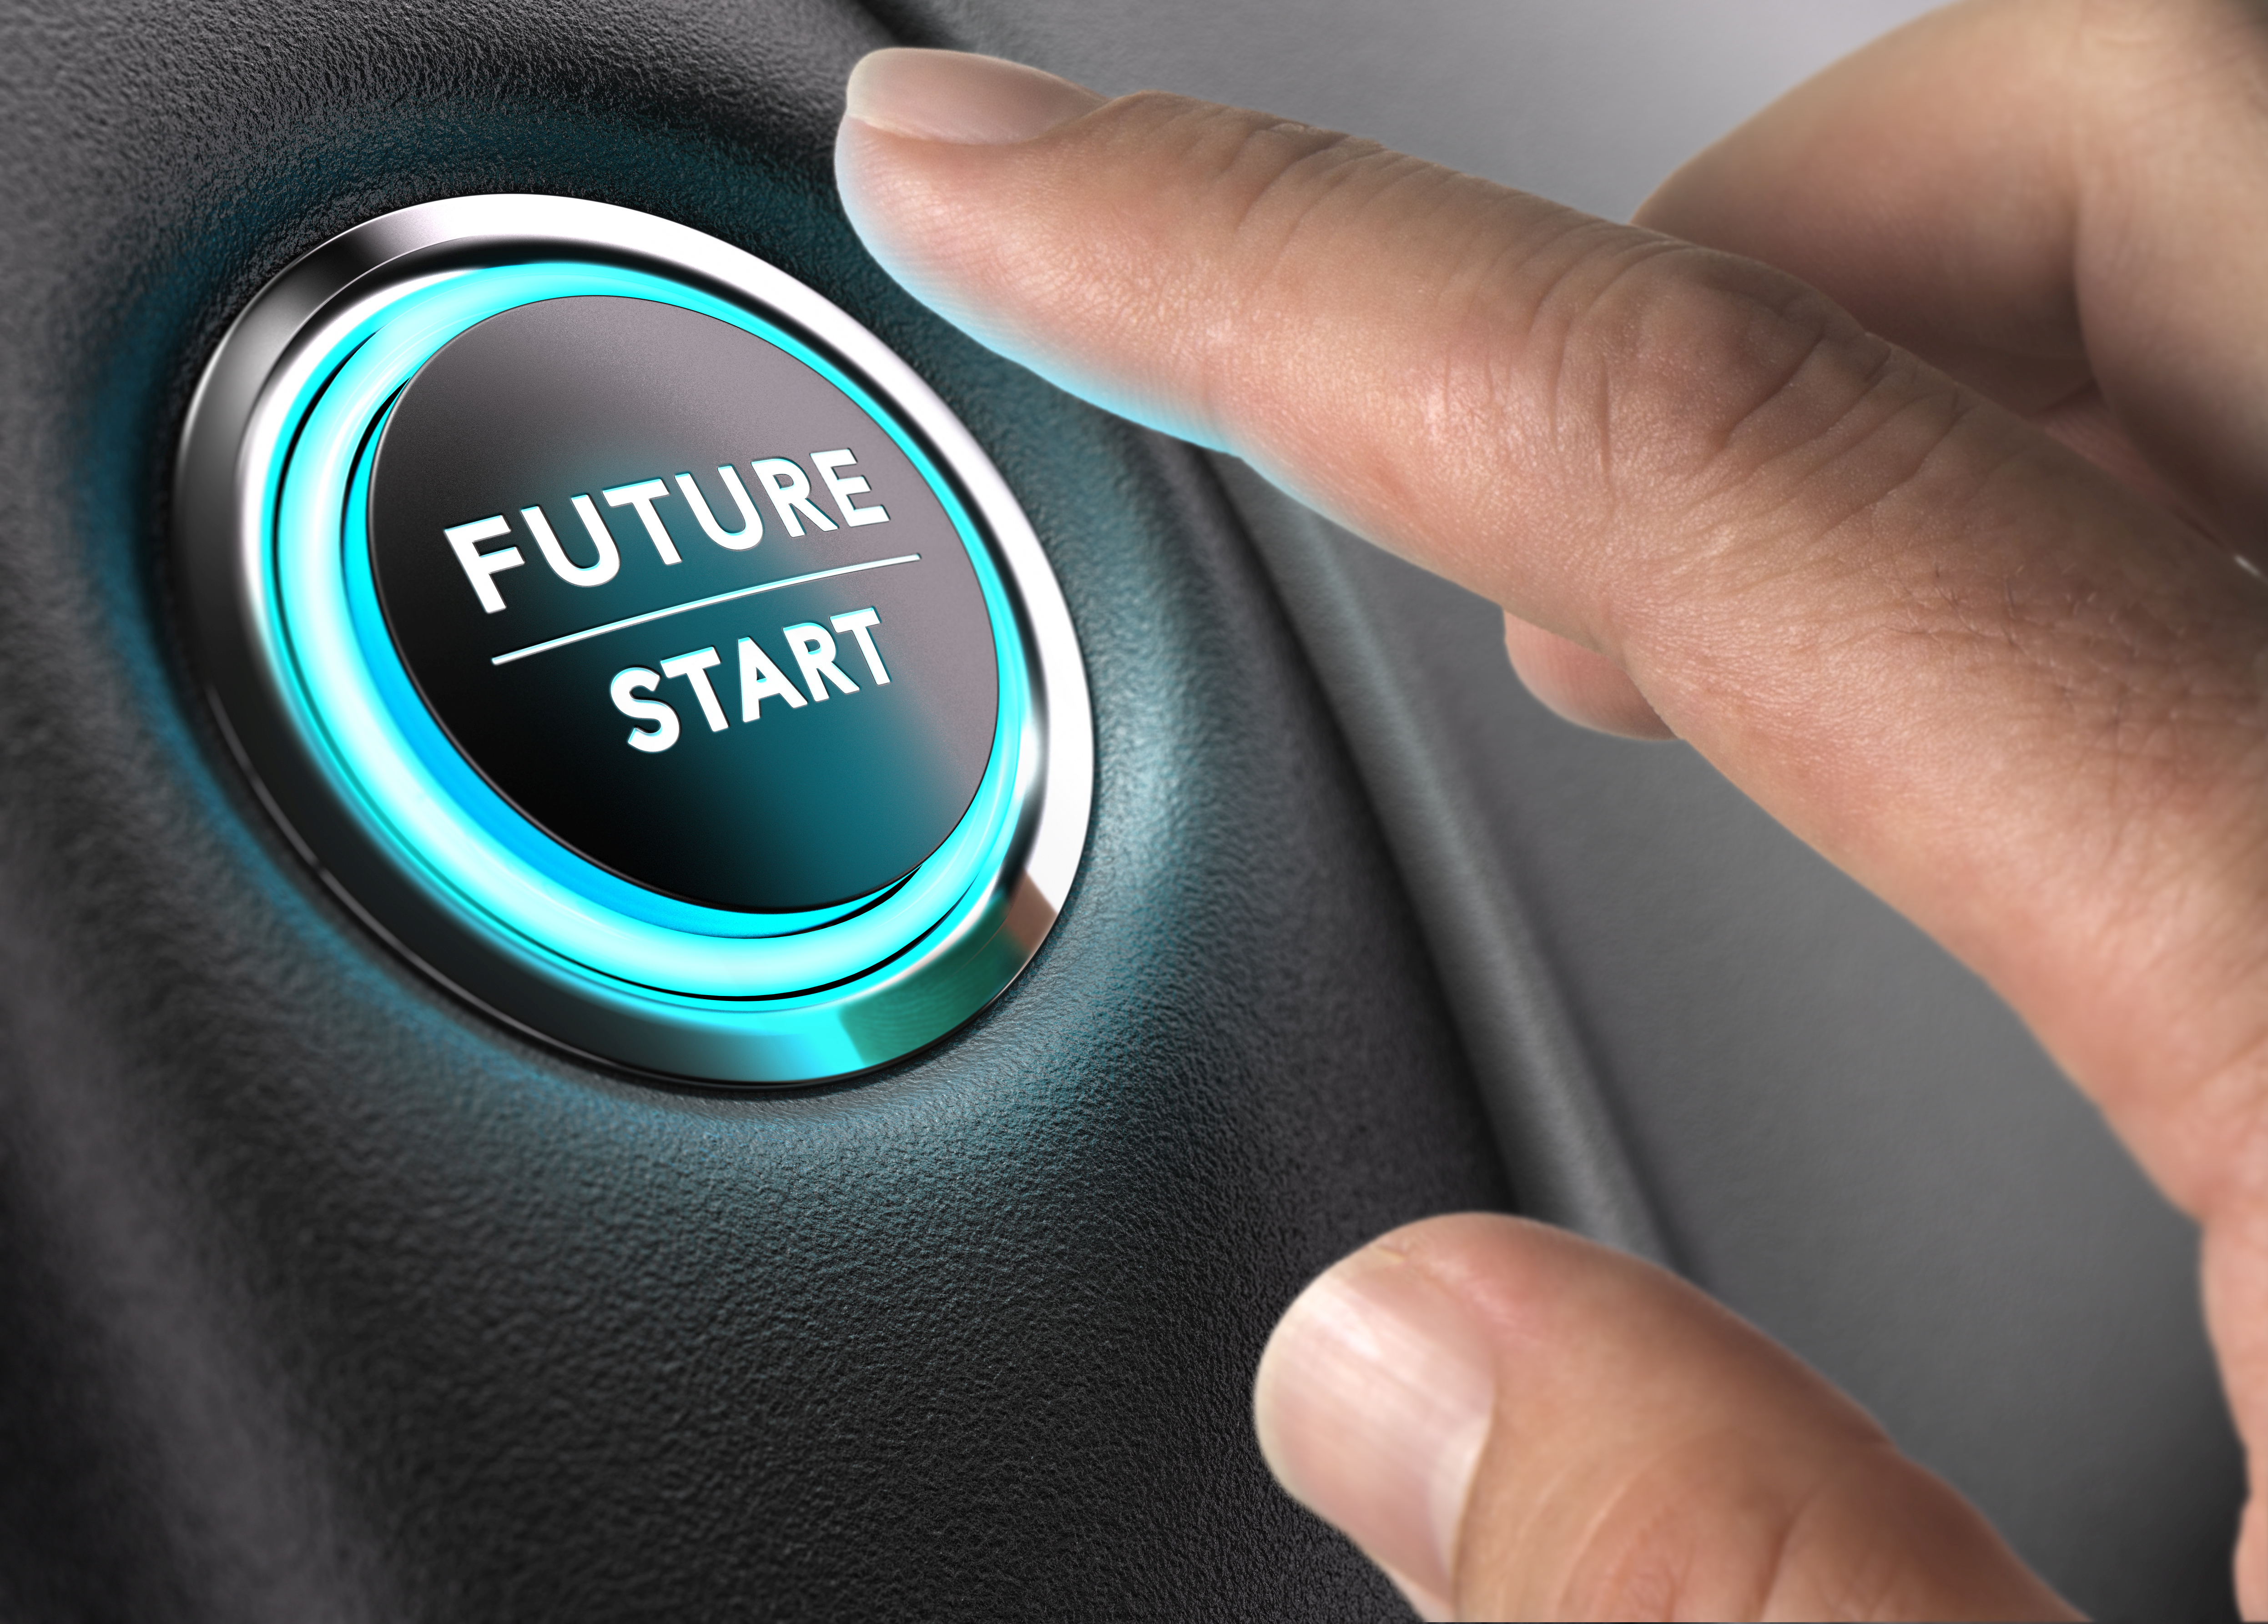 Technology Intersection to Provide View of Future at AAPEX